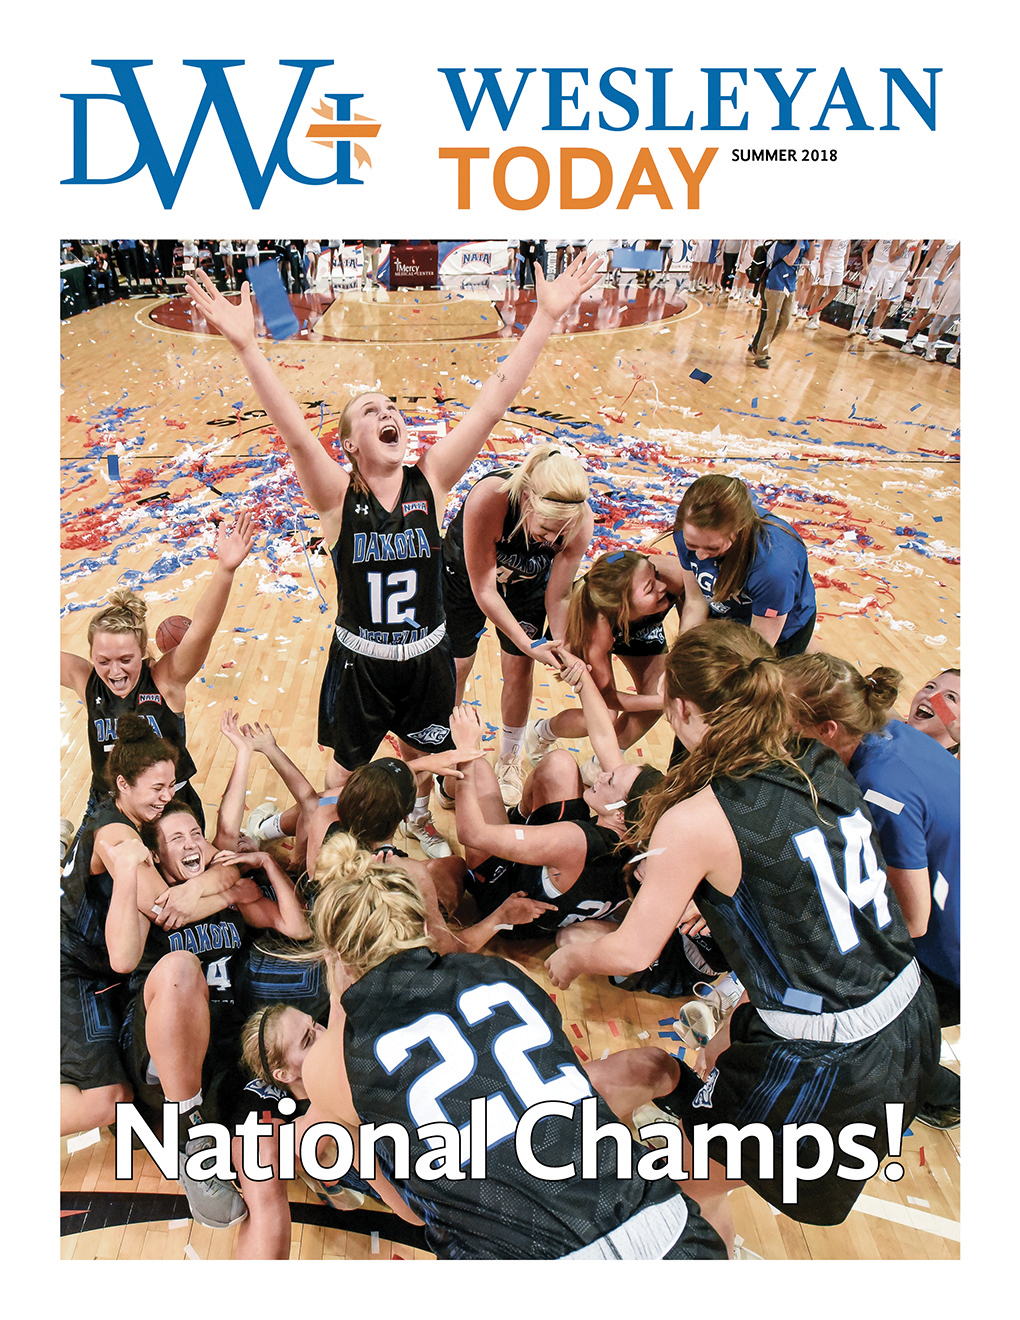 The cover of the summer 2018 edition of the Wesleyan Today.